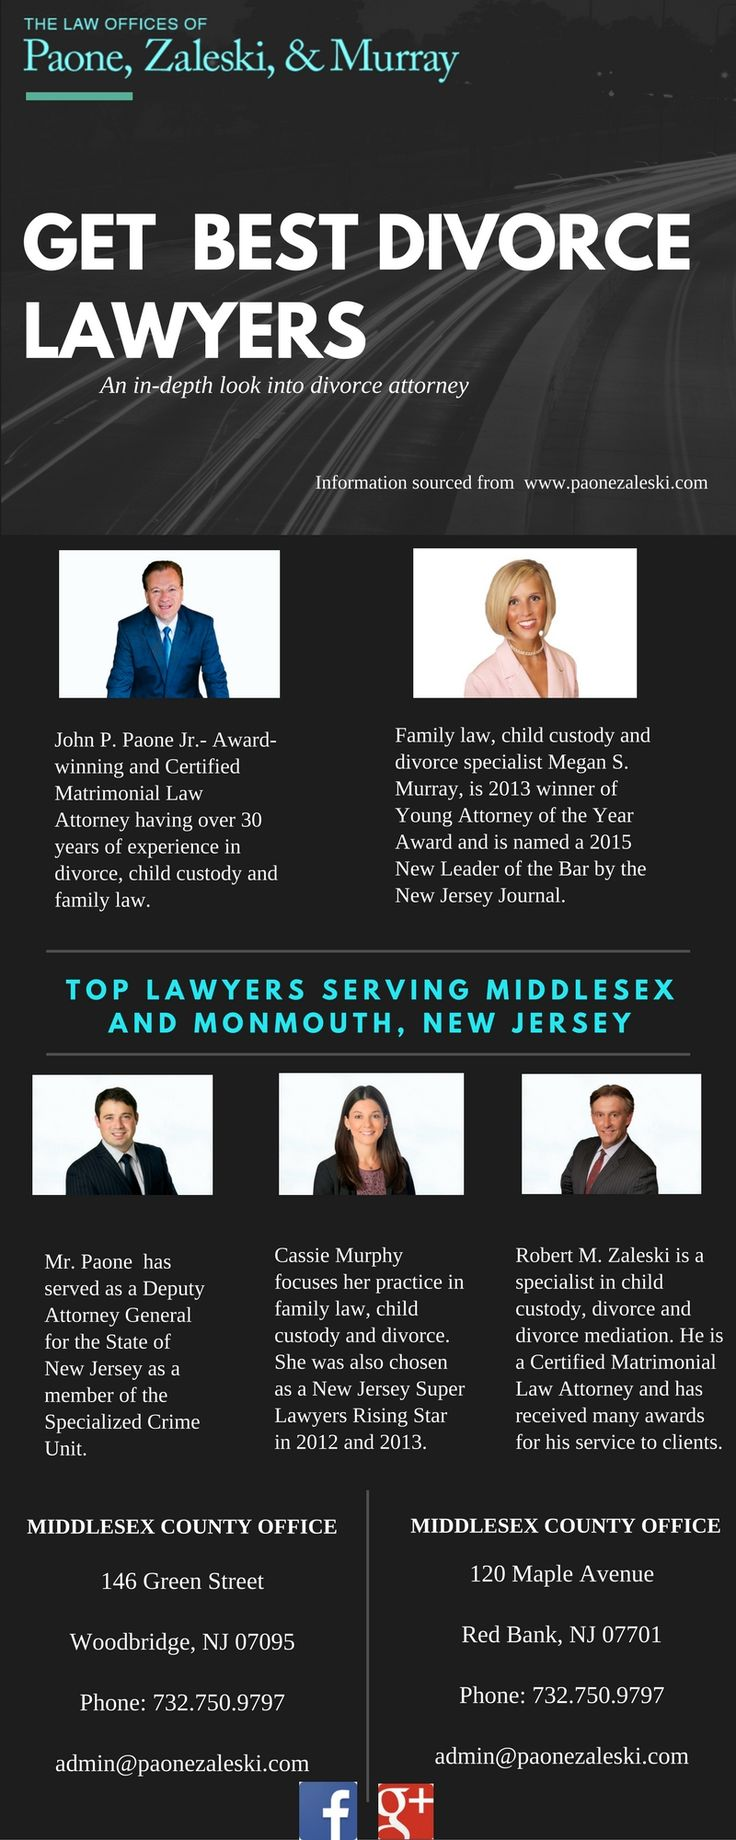 Paone, Zaleski & Murray has experienced and trusted Divorce Attorneys & family lawyers. We have offices in Middlesex and Monmouth Counties, New Jersey.